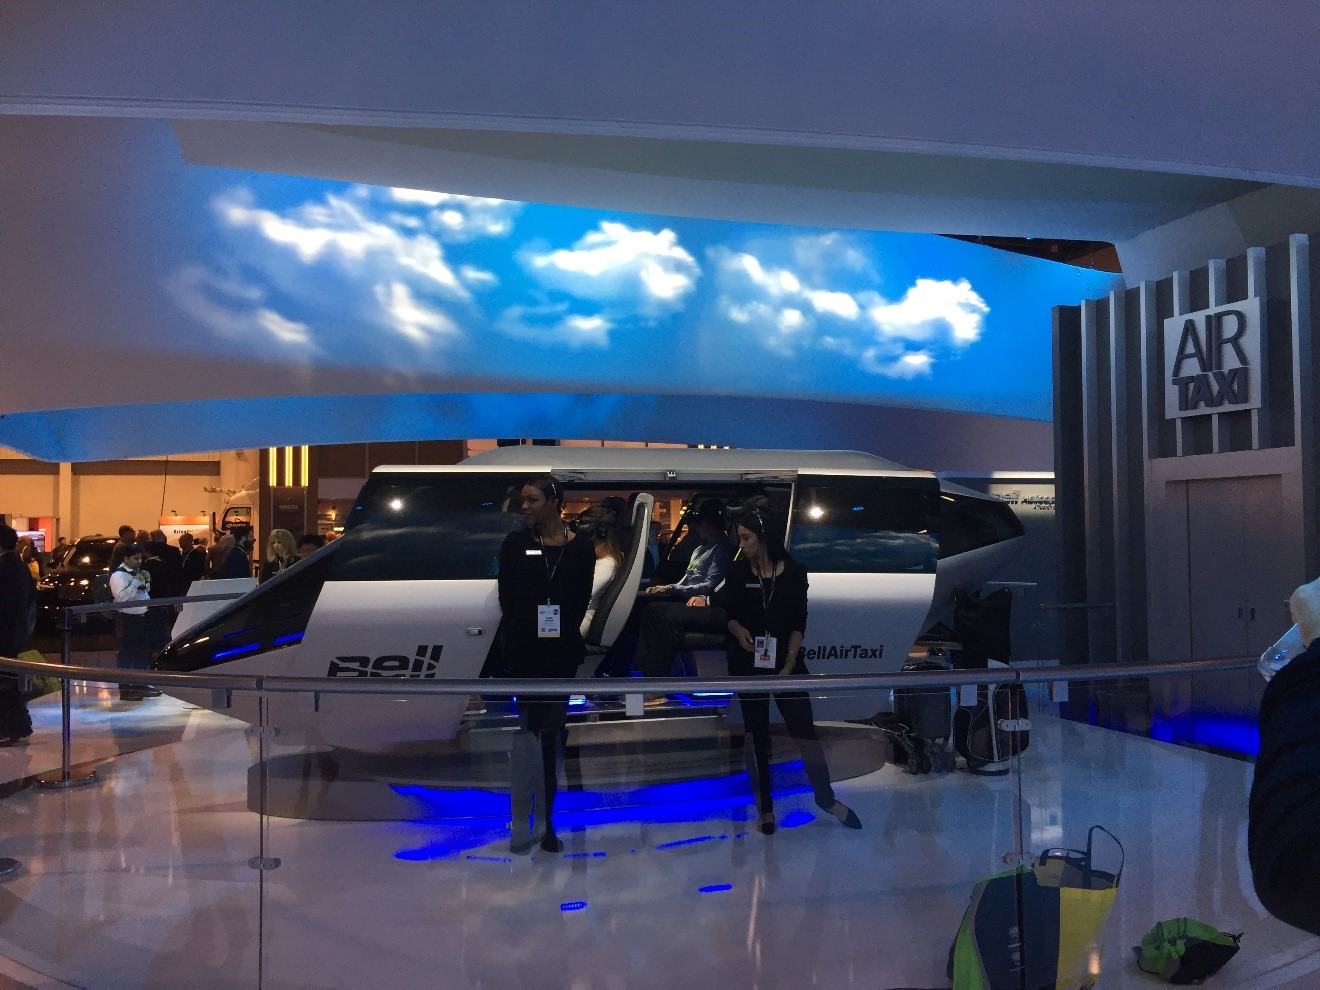 Bell helicopter made headlines with its electric flying taxi. The cabin of the helicopter was on display for all to see and the helicopter maker plans to unveil the full model at a later date. Bell wants to make helicopter travel a more affordable proposition that's available to everyone.